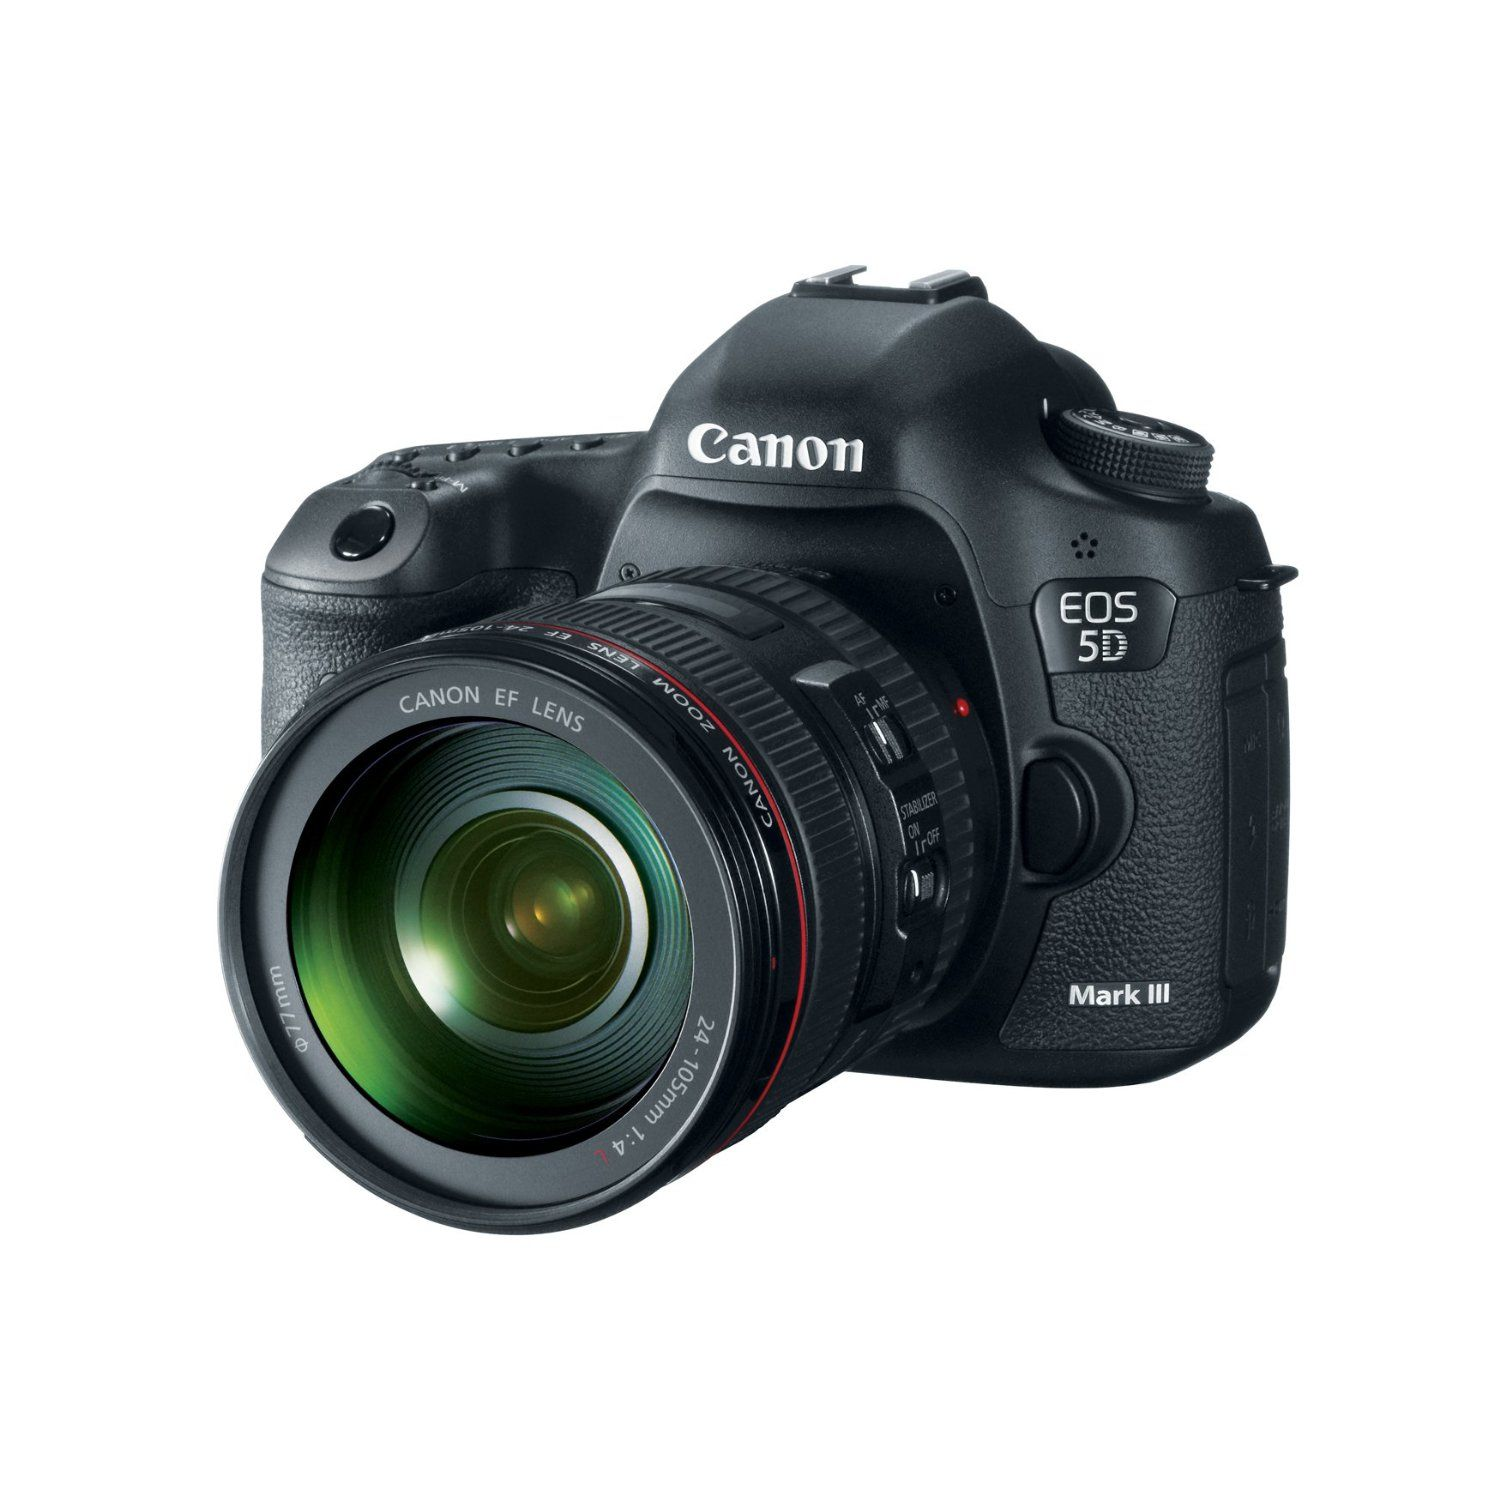 Canon 5d Mark Iii Someday Just Maybe Someday Full Frame Dslr Canon Dslr Camera Canon 5ds Canon Dslr